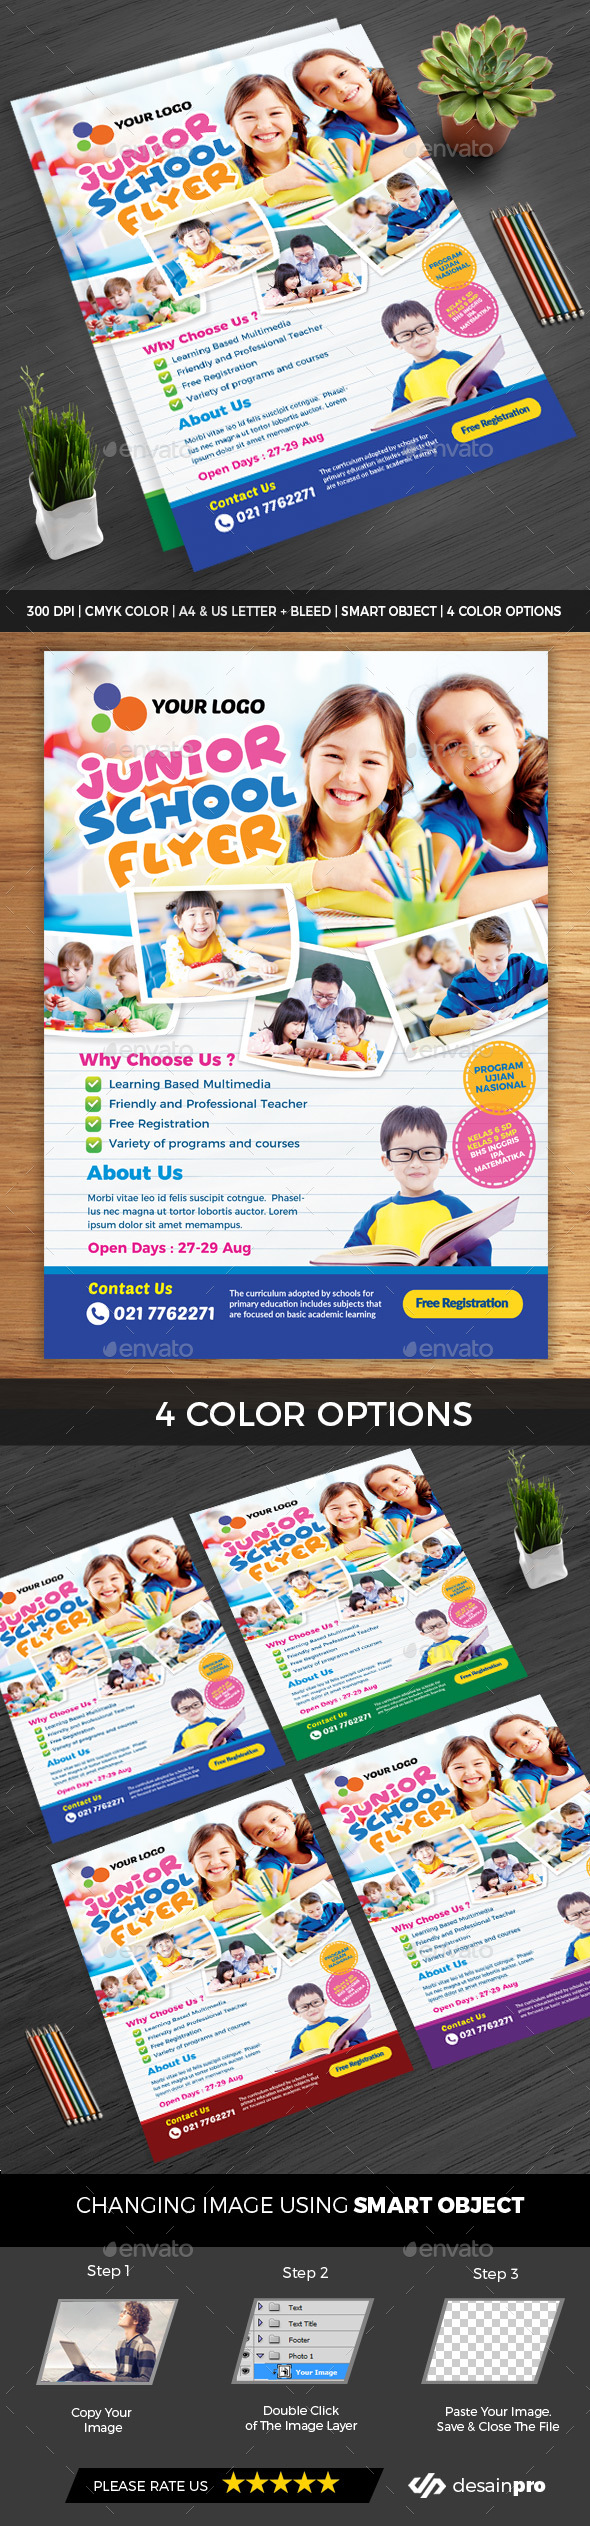 Education Flyer - Corporate Flyers